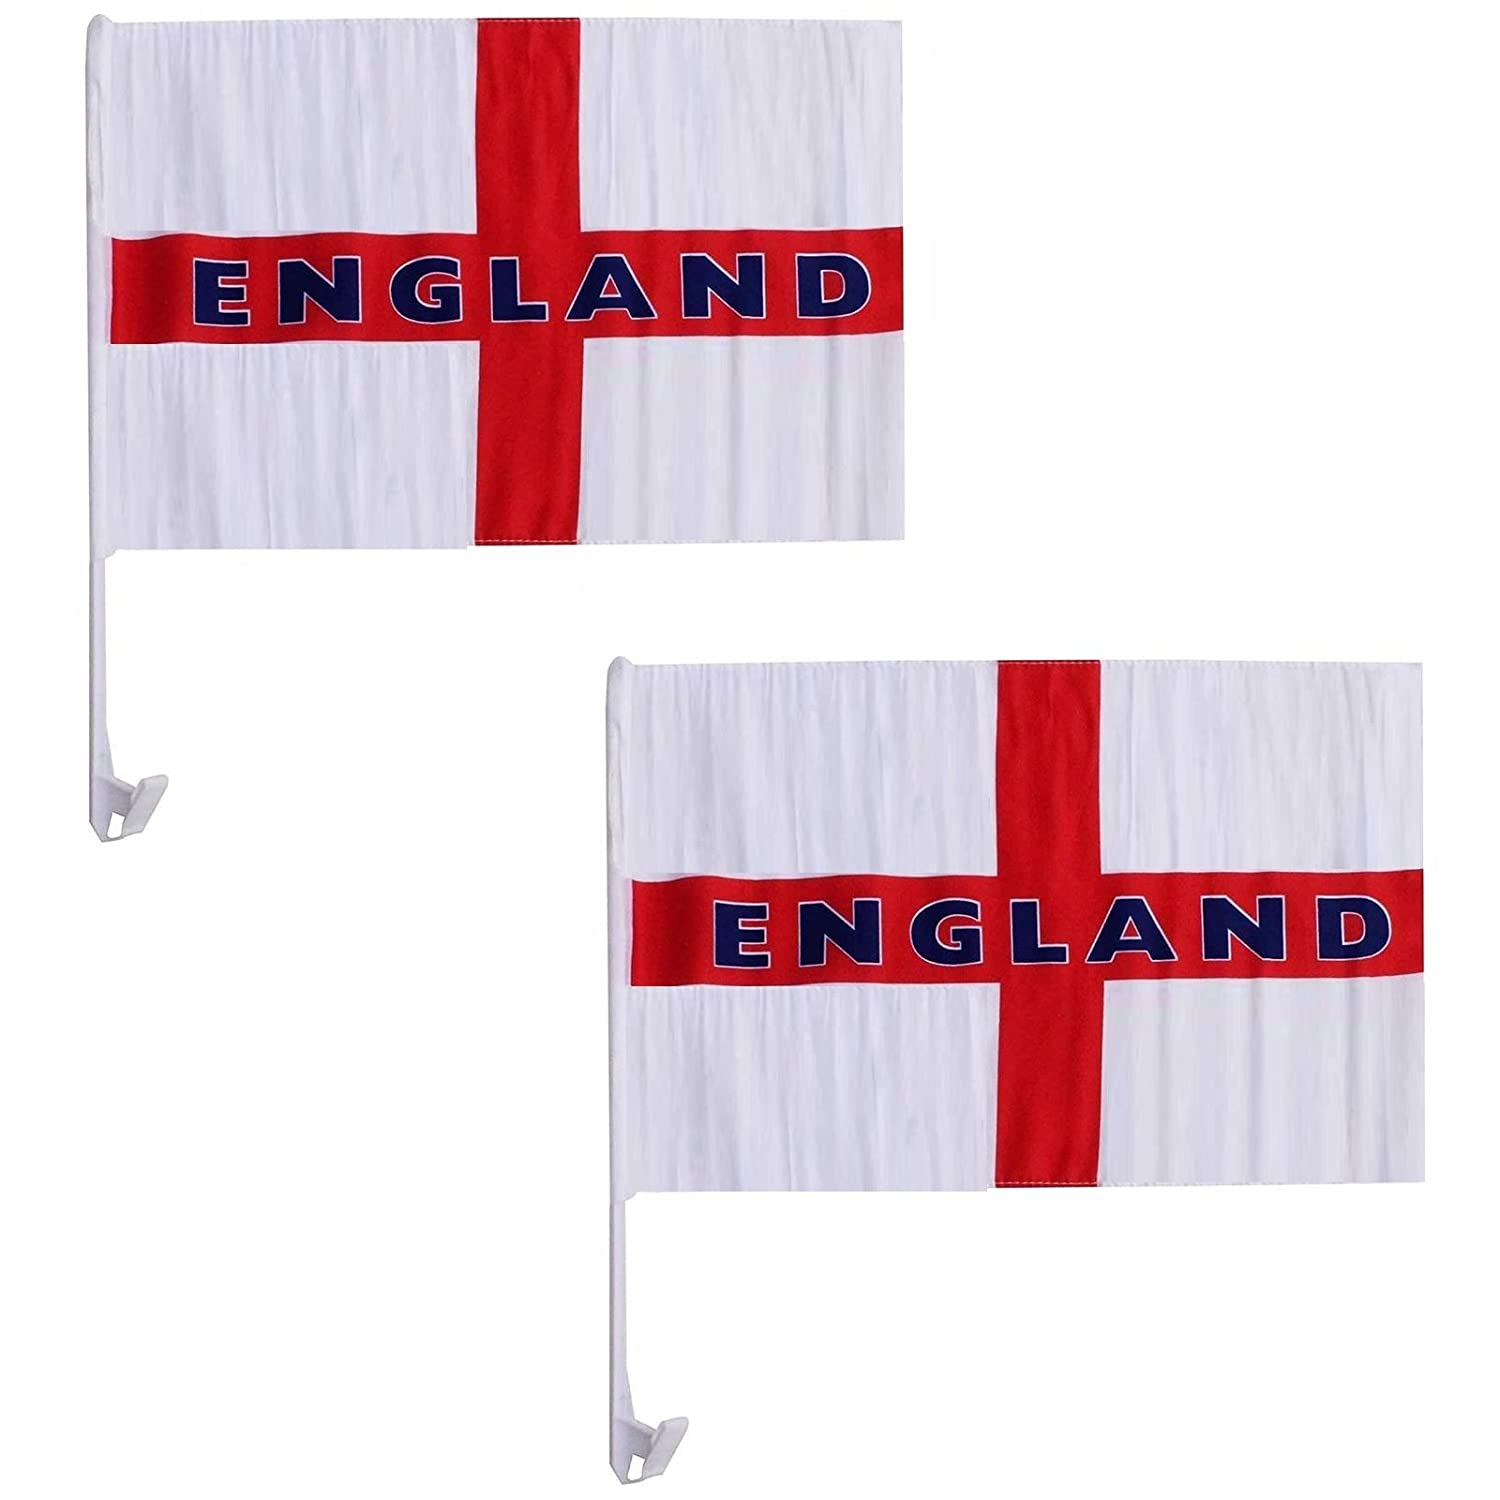 Gr8 Home Set Of 2 England Car Flag National St Georges Cross Pub Window Display Flags Football Supporters Sports Soccer World Cup 2018 Cricket Rugby